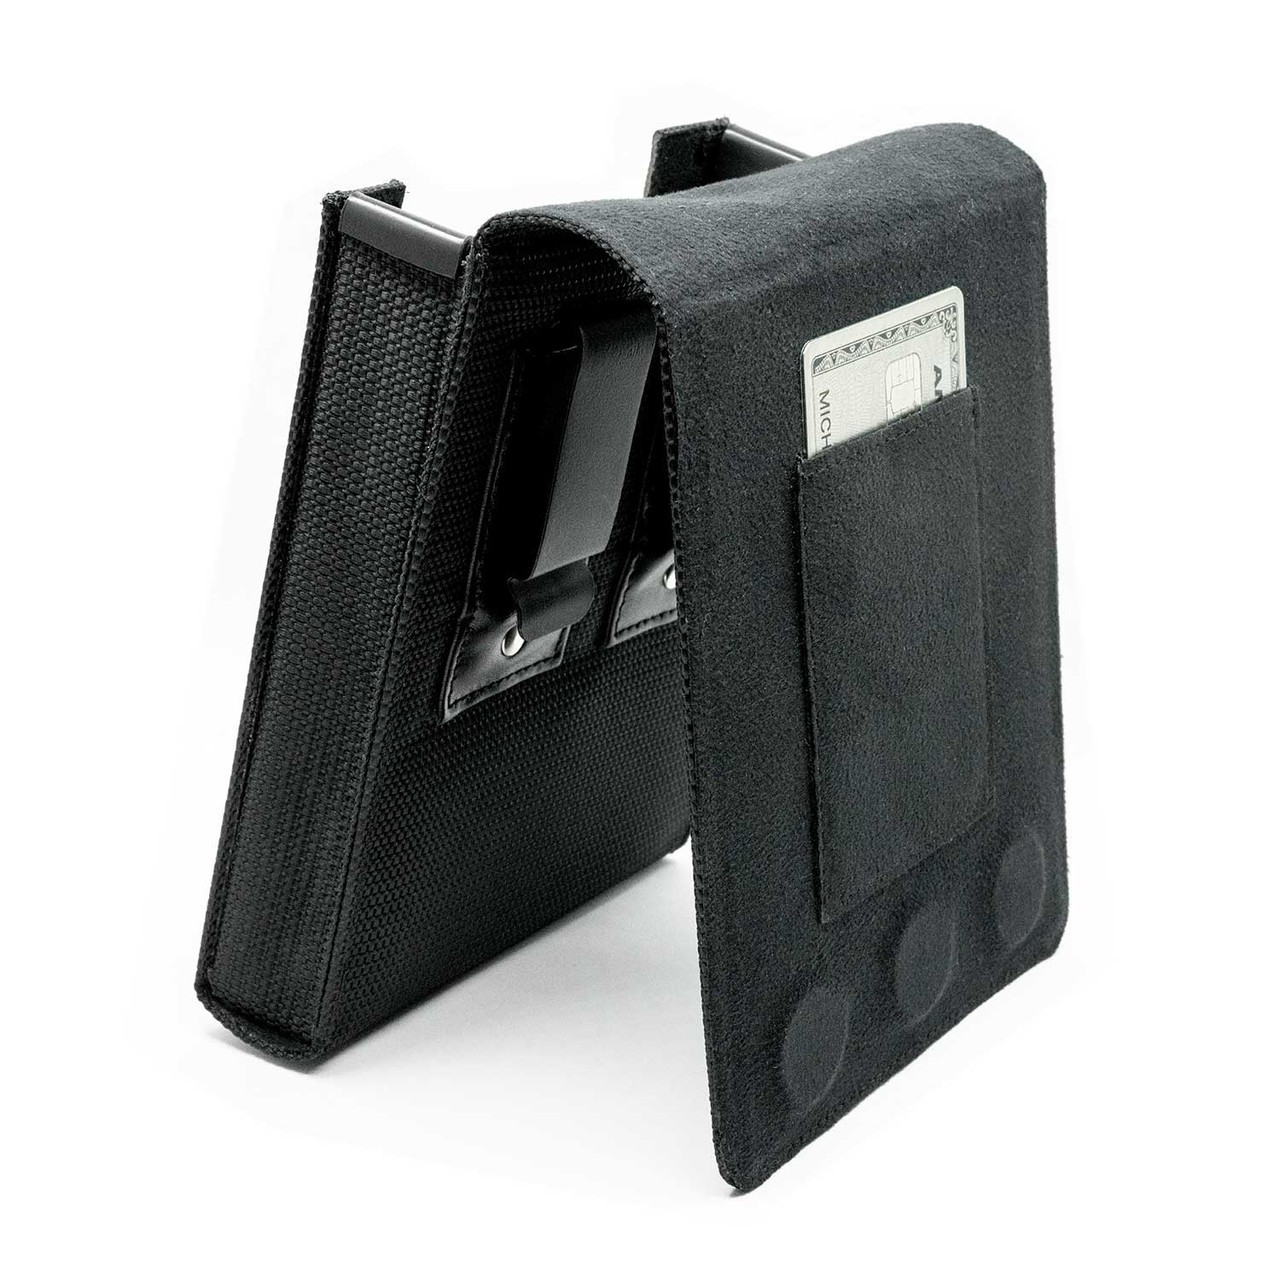 HK VP40 Air Force Tactical Patch Holster